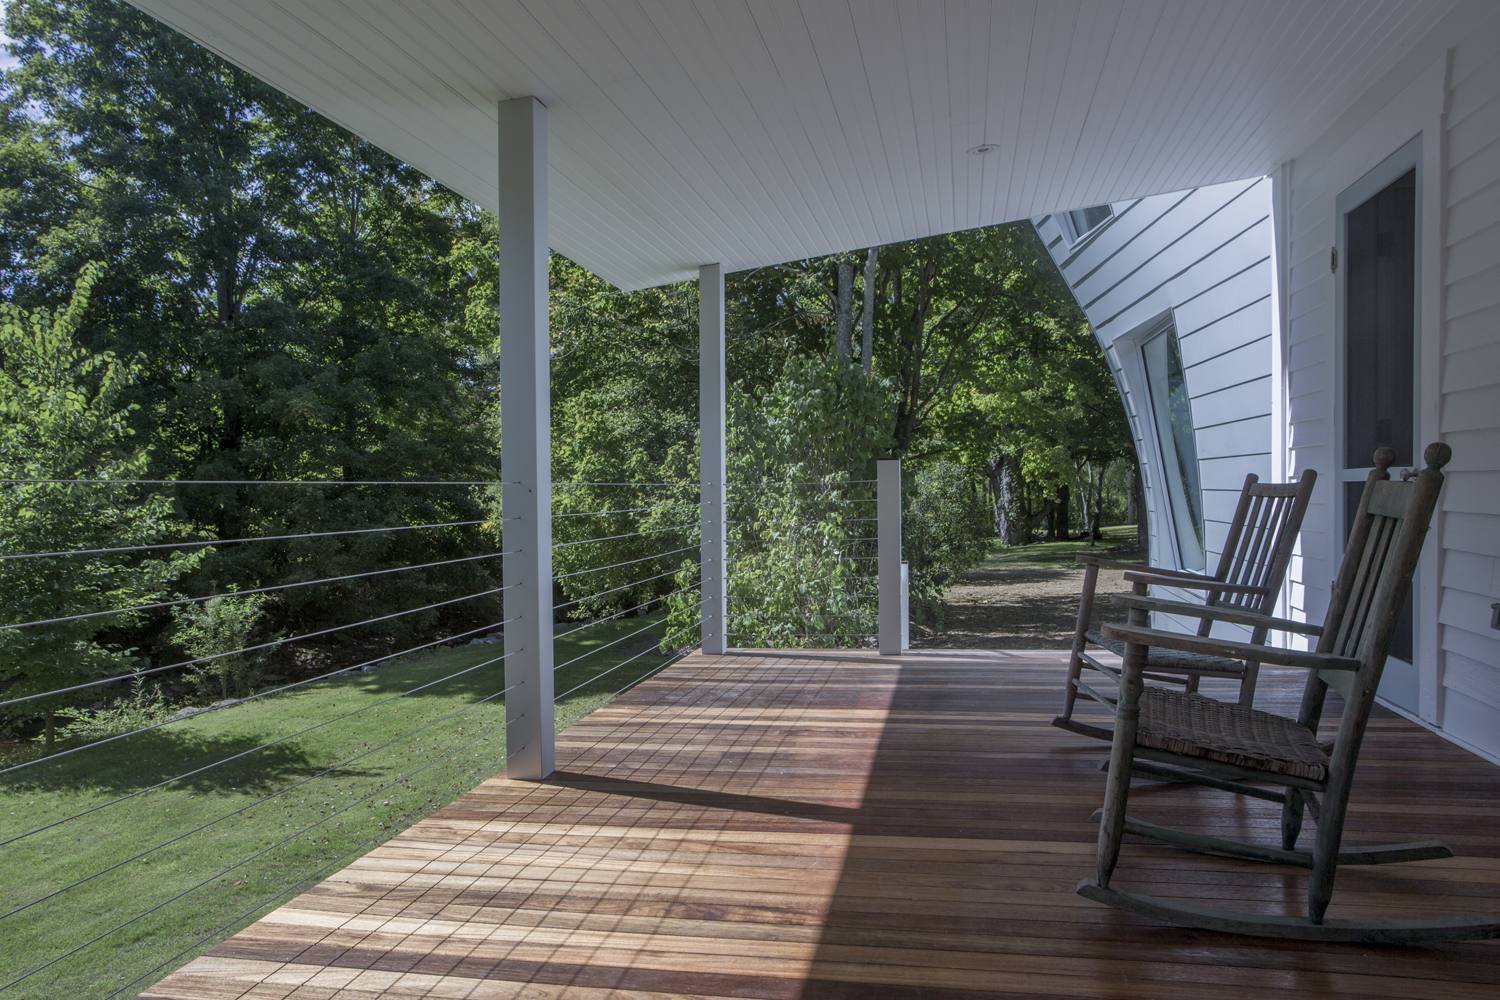 Tom Givone, designer of Twist Farmhouse in Dwell magazine and owner of the Floating Farmhouse in the Catskills, upstate NY.